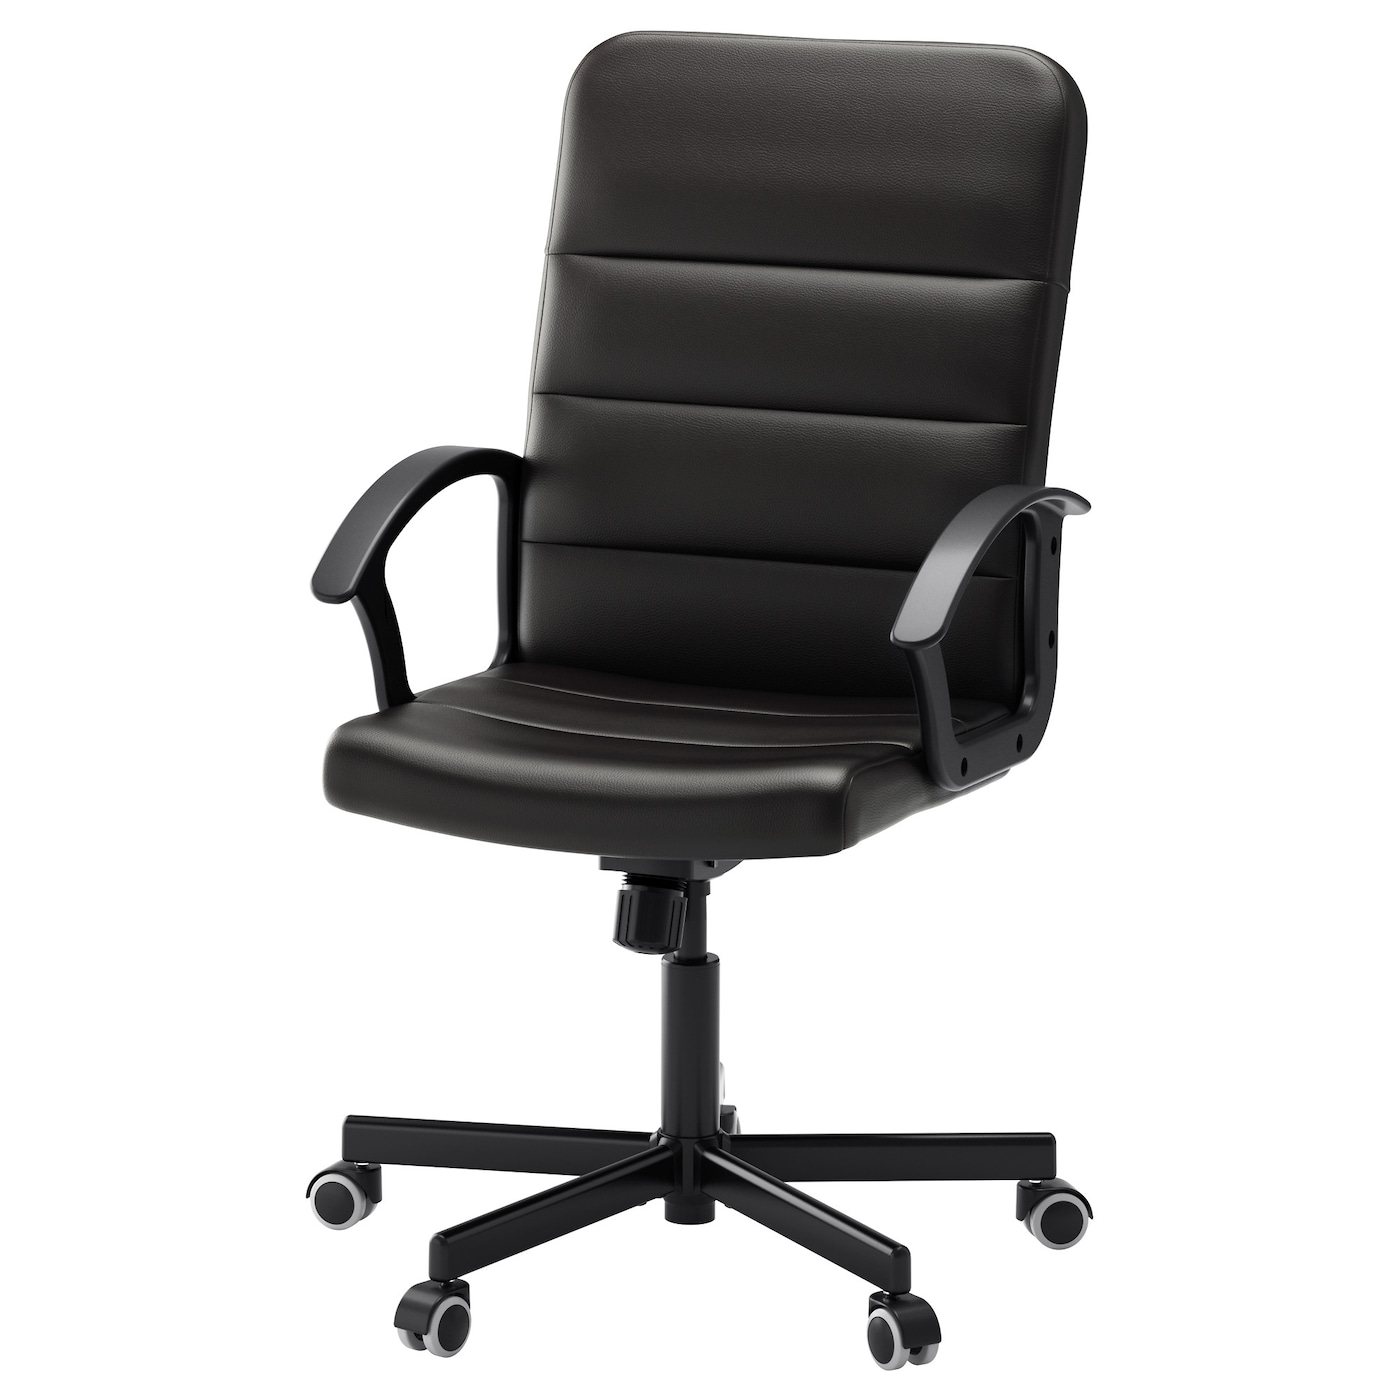 cream office chair torkel swivel chair bomstad black ikea 13617 | torkel swivel chair bomstad black 0377861 pe555717 s5